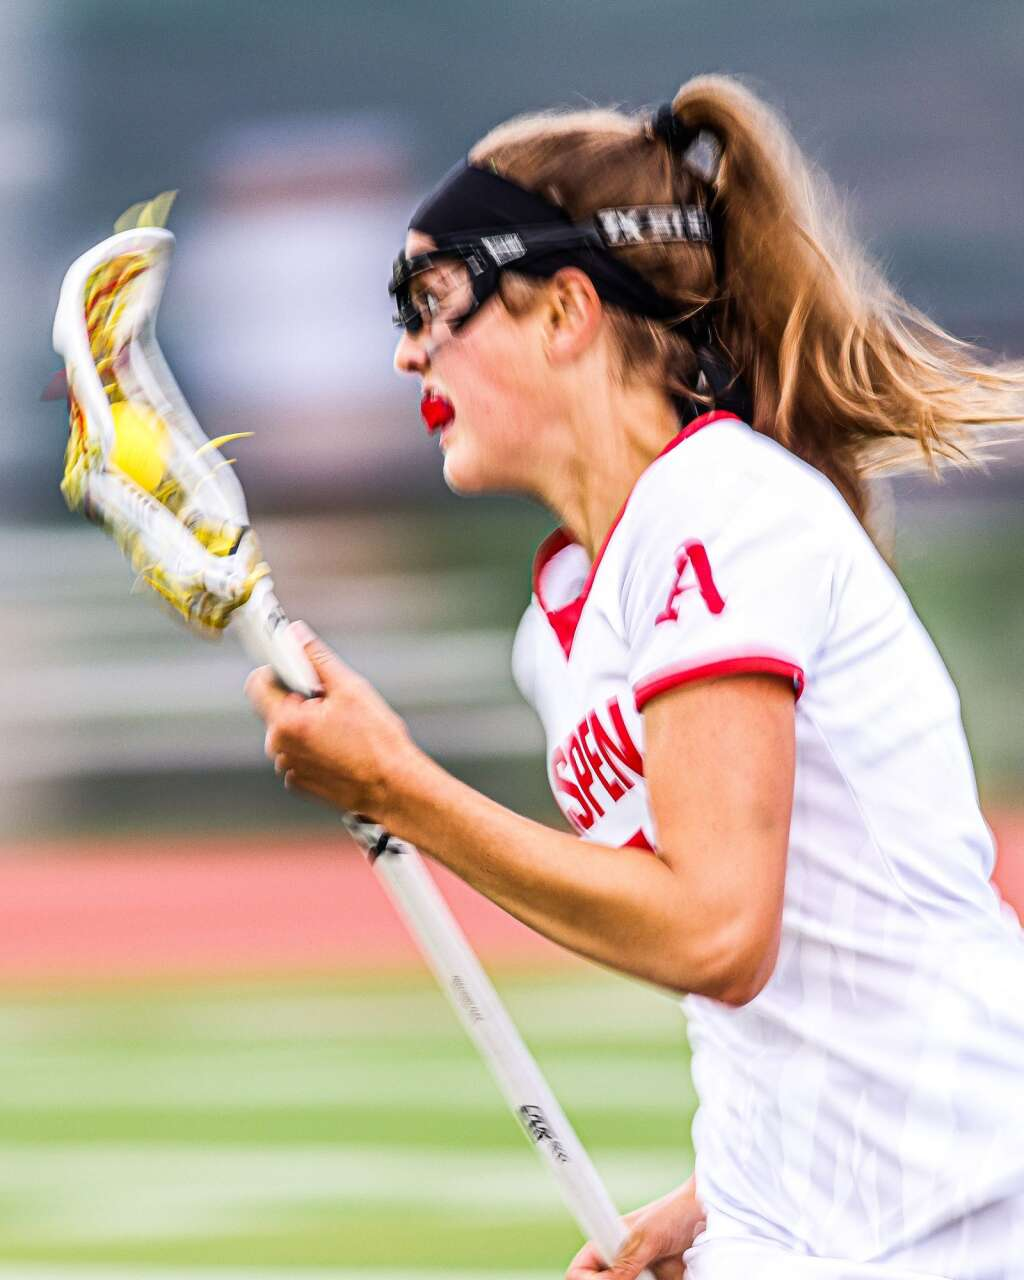 Aspen High School senior Kylie Kenny brings the ball upfield in the girls lacrosse game against Castle View in the Class 4A state quarterfinals on Saturday, June 19, 2021, on the AHS turf. The Sabercats won, 10-9. Photo by Austin Colbert/The Aspen Times.